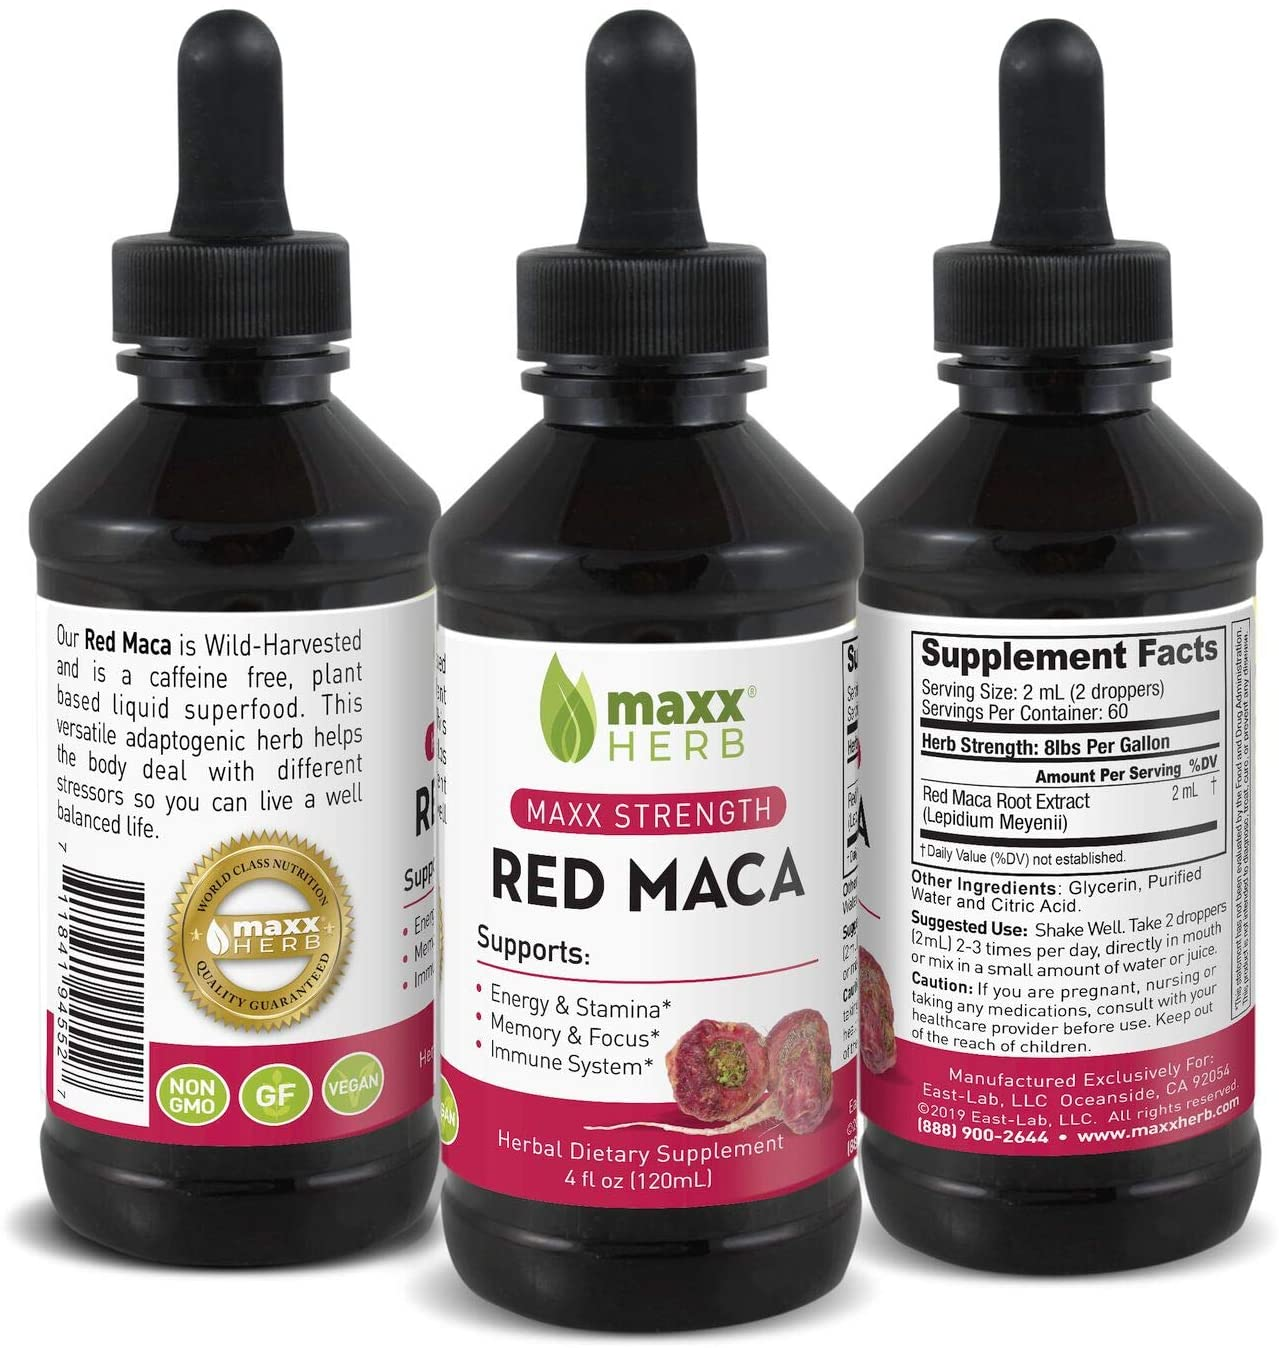 Maxx Herb Red Maca Liquid Extract (4 Oz Bottle with Dropper) Max Strength, Absorbs Better Than Maca Powder, for Energy, Stamina, Hormone Balance, Memory and Focus, Alcohol-Free, 60 Servings